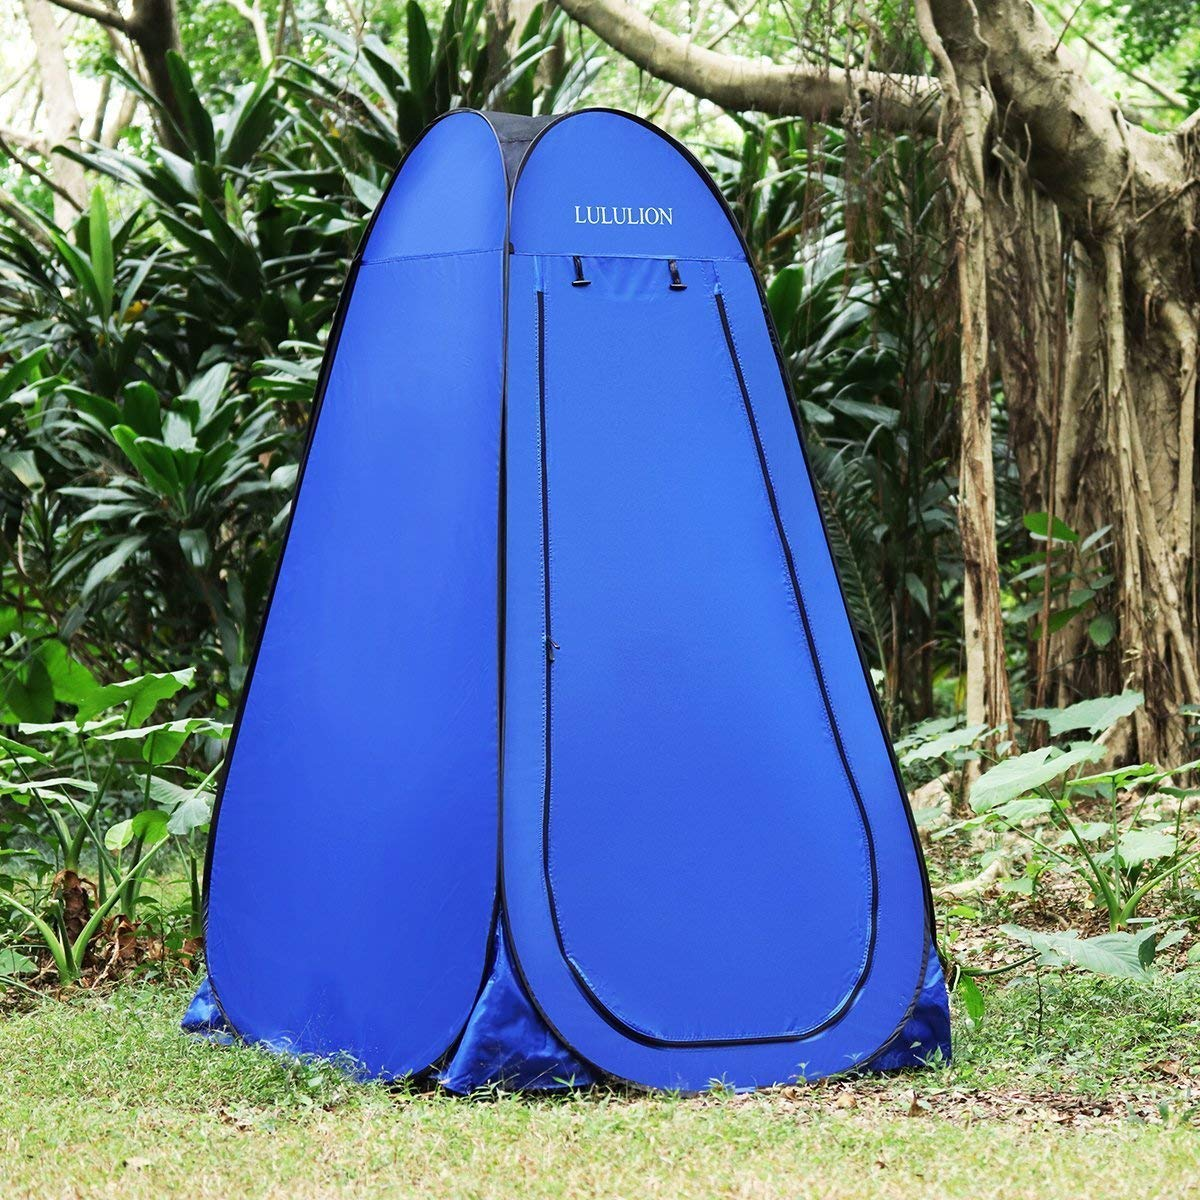 Portable Dressing Changing Room Privacy Shelter Tent for Outdoor Camping Beach Toilet and Indoor Photo Shoot with Carrying Bag 6.25Ft iBaseToy Anti-Peeping Pop-up Shower Tent